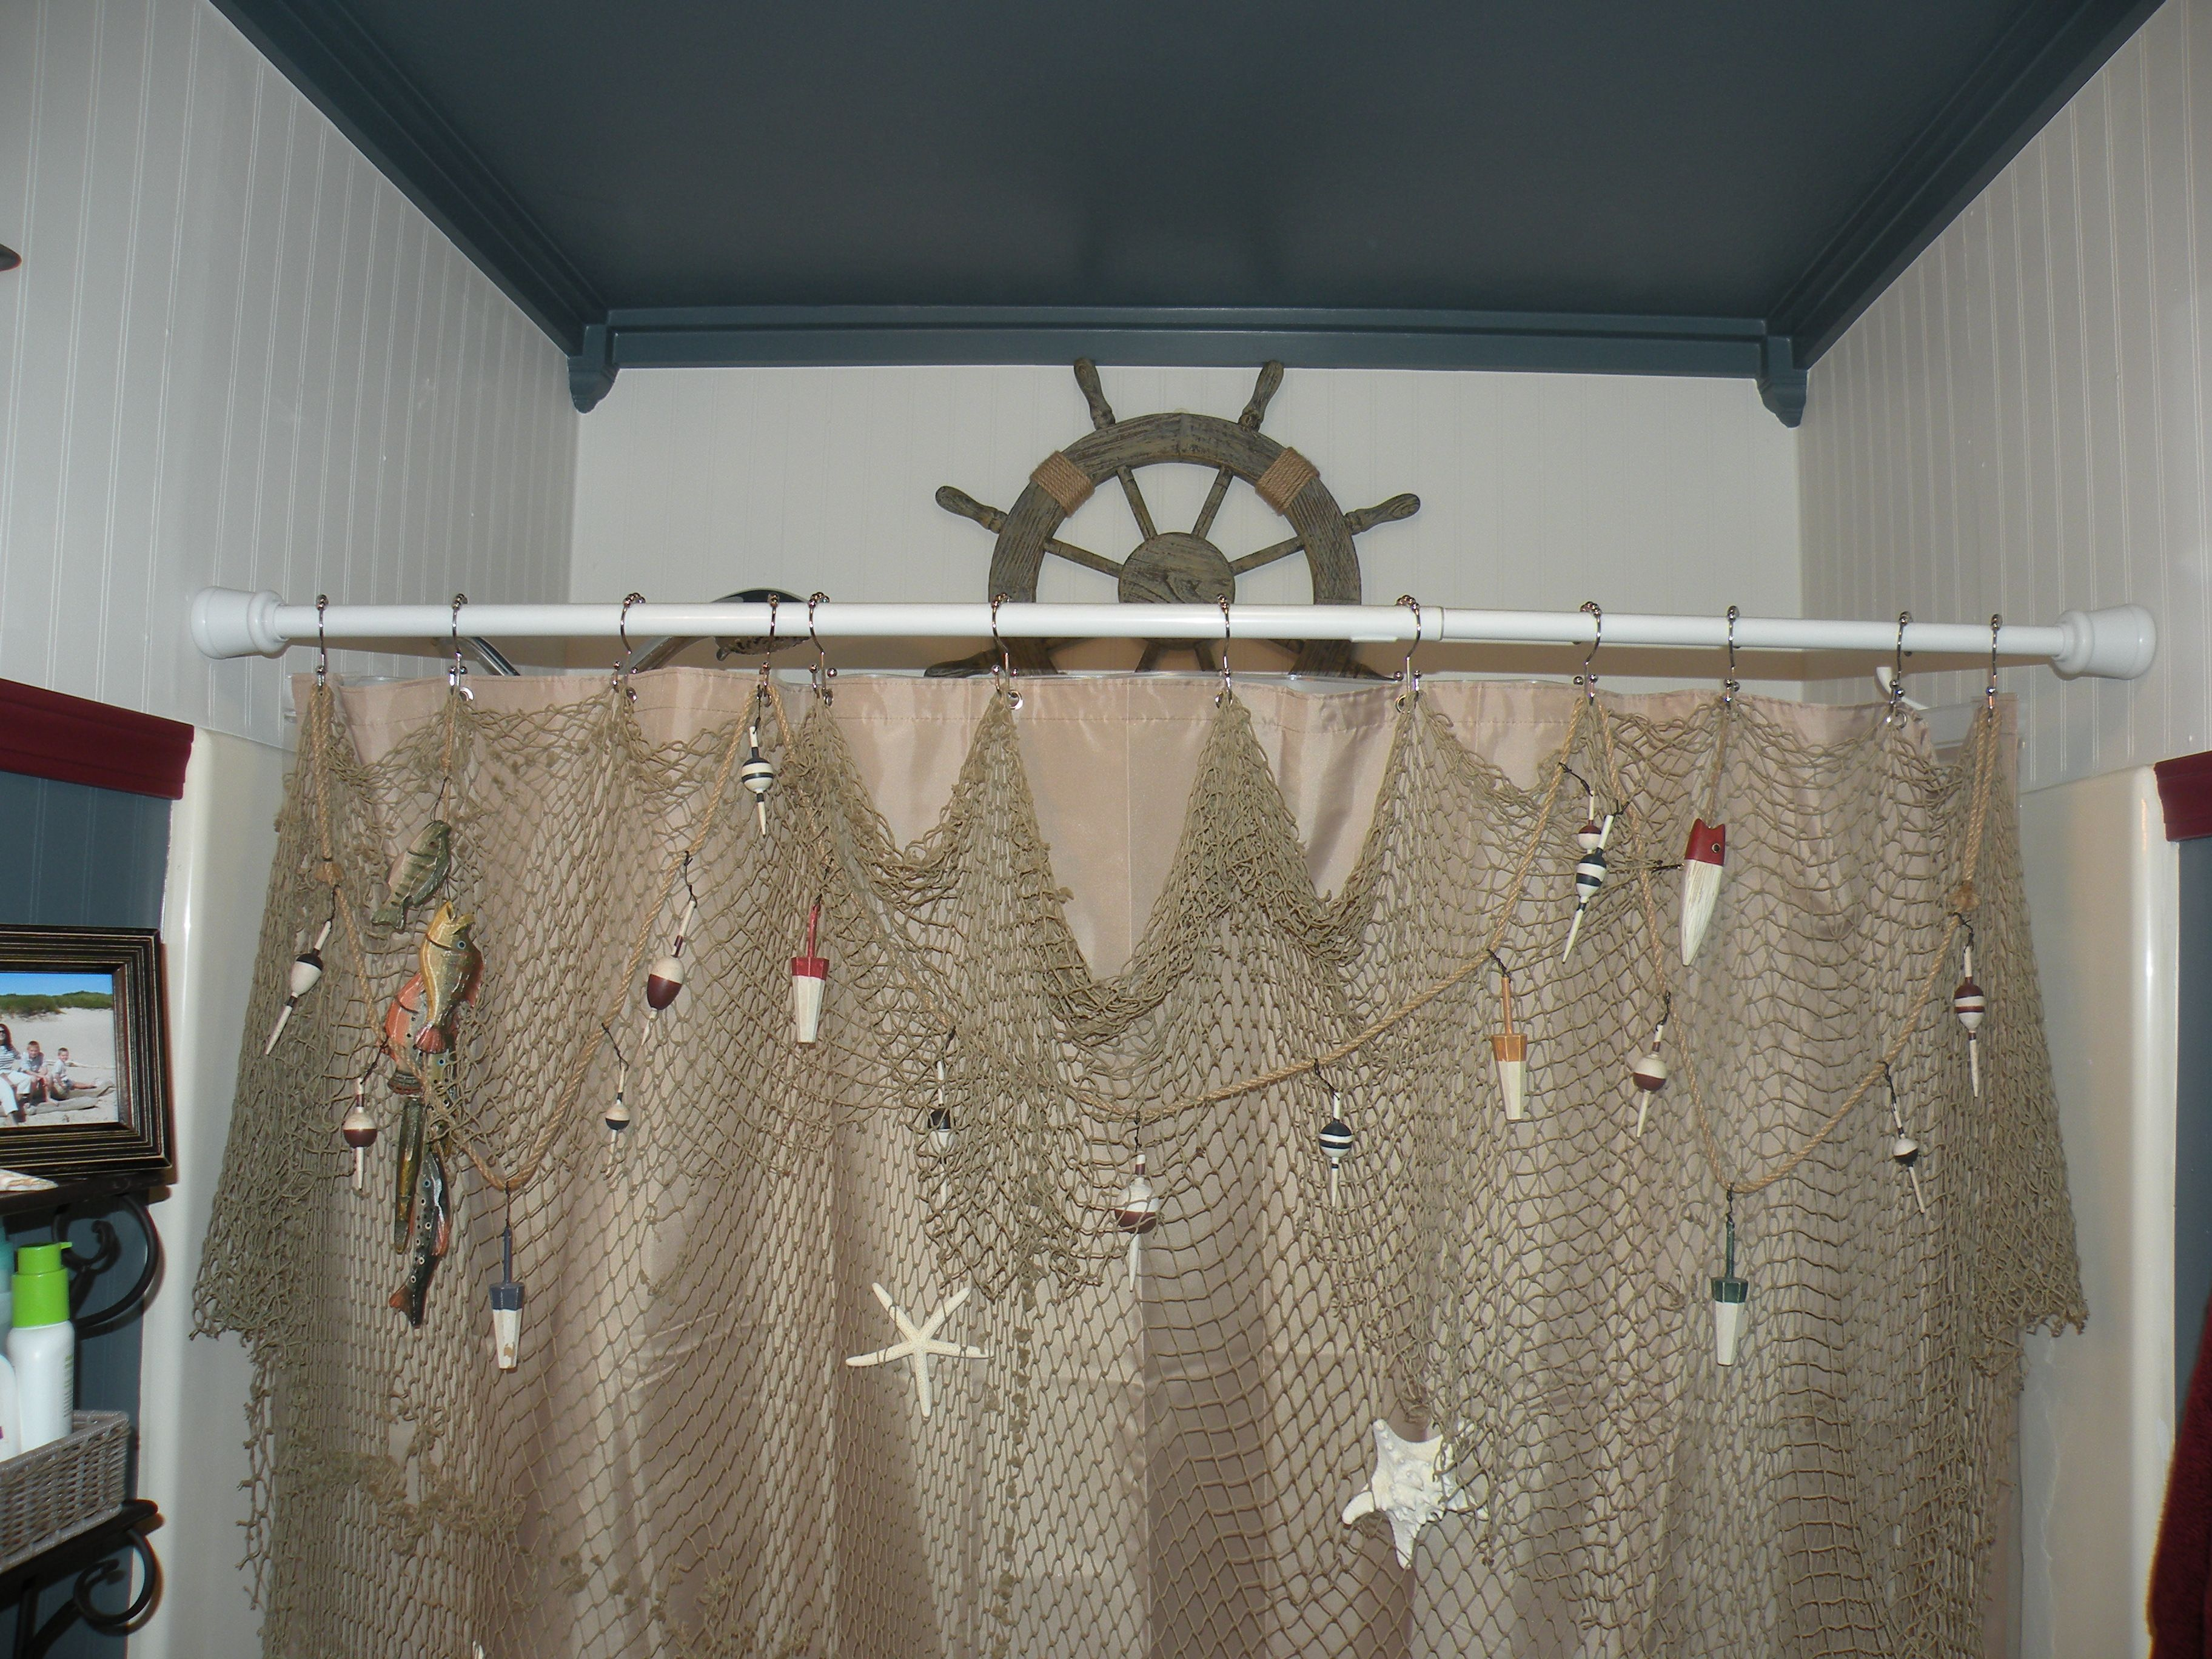 I hung a decorative fishing net with wooden fish and real starfish ...